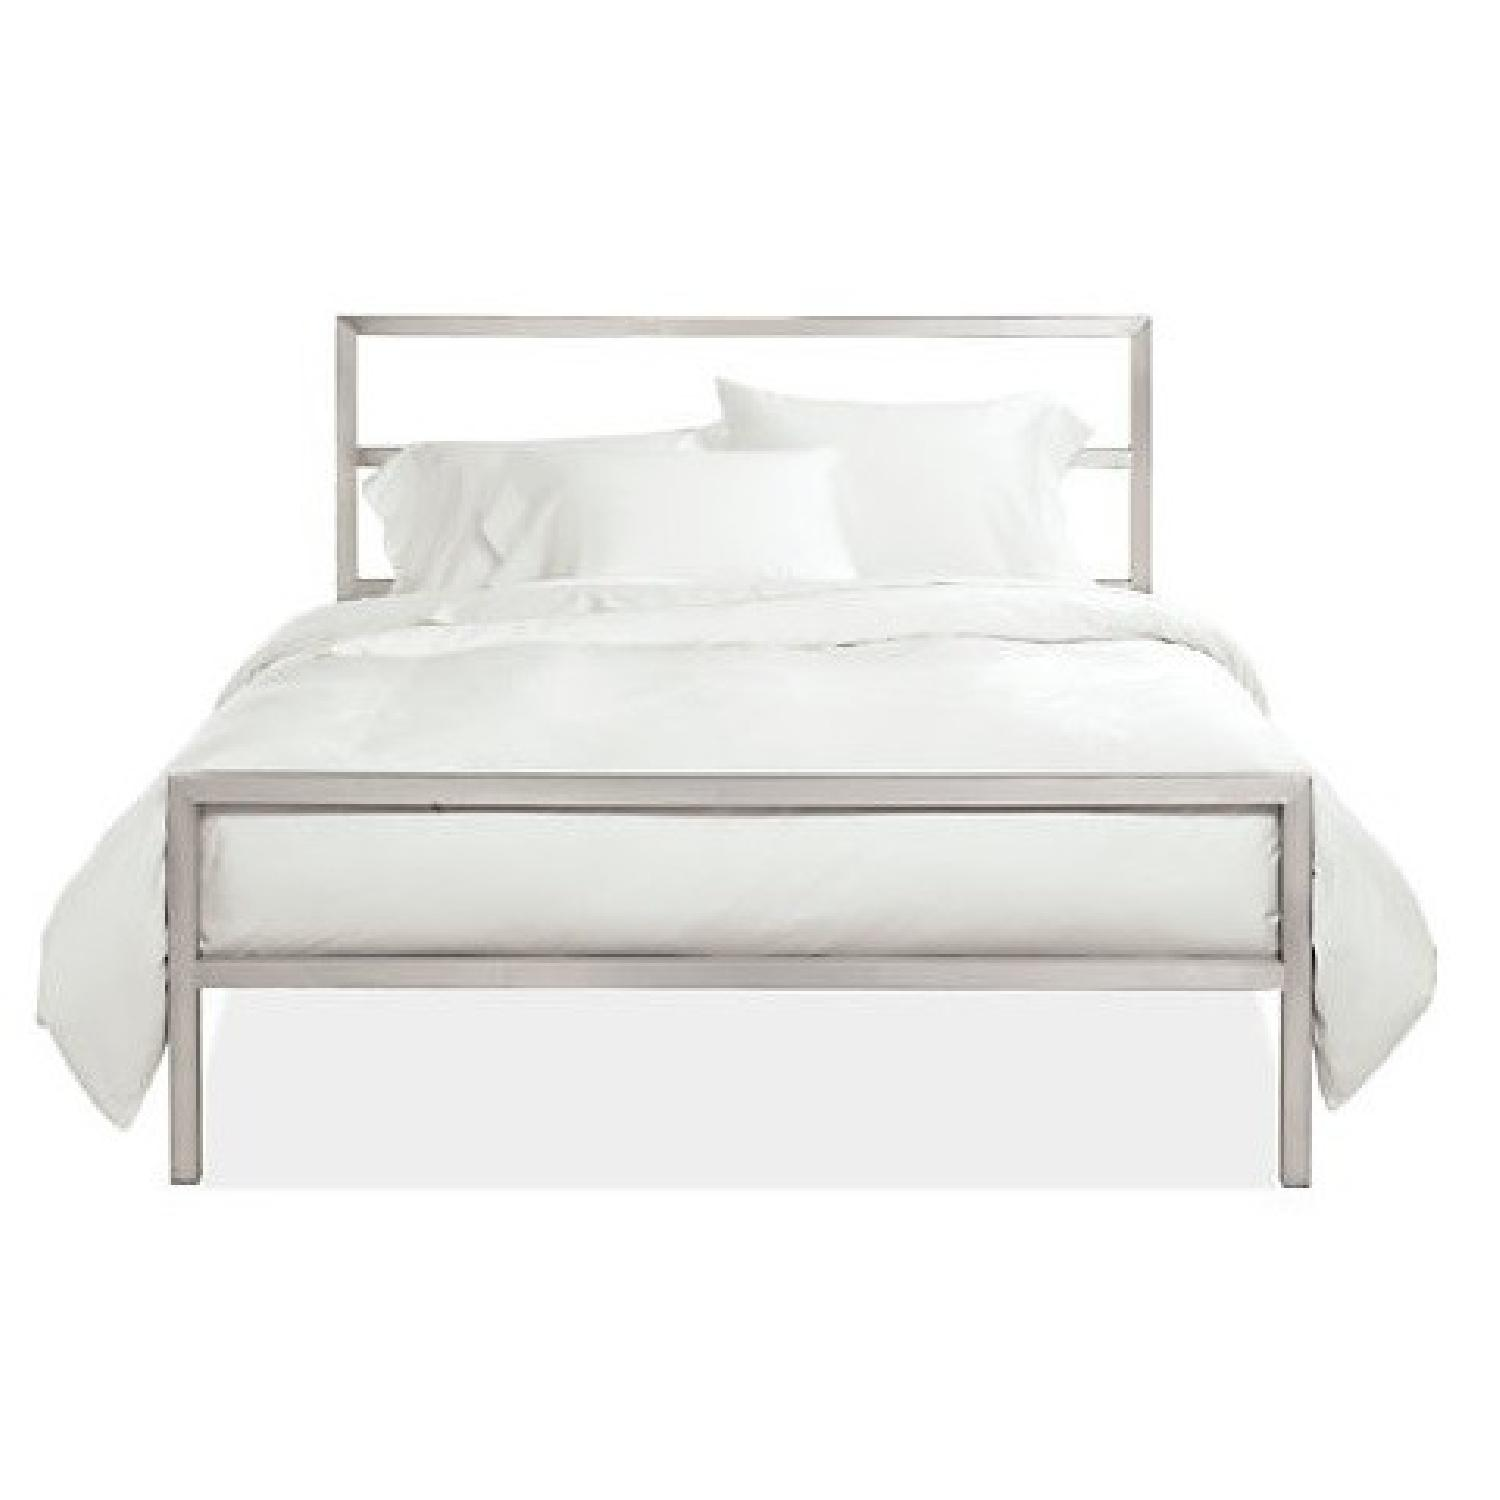 Room & Board Portica Stainless Steel Bed